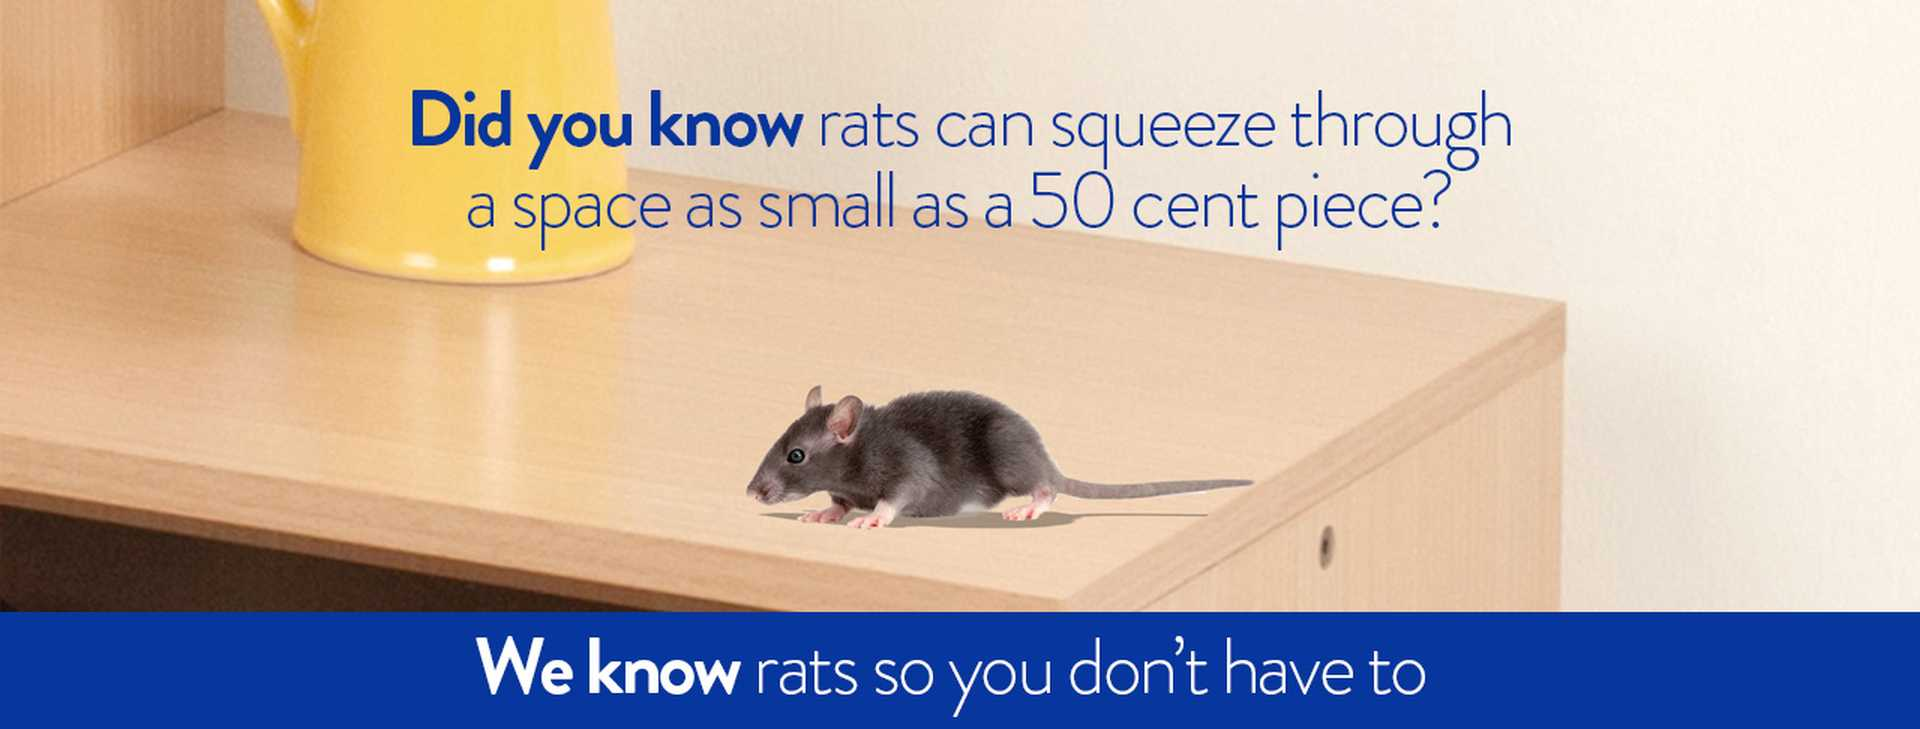 We know rodents so you don't have to.